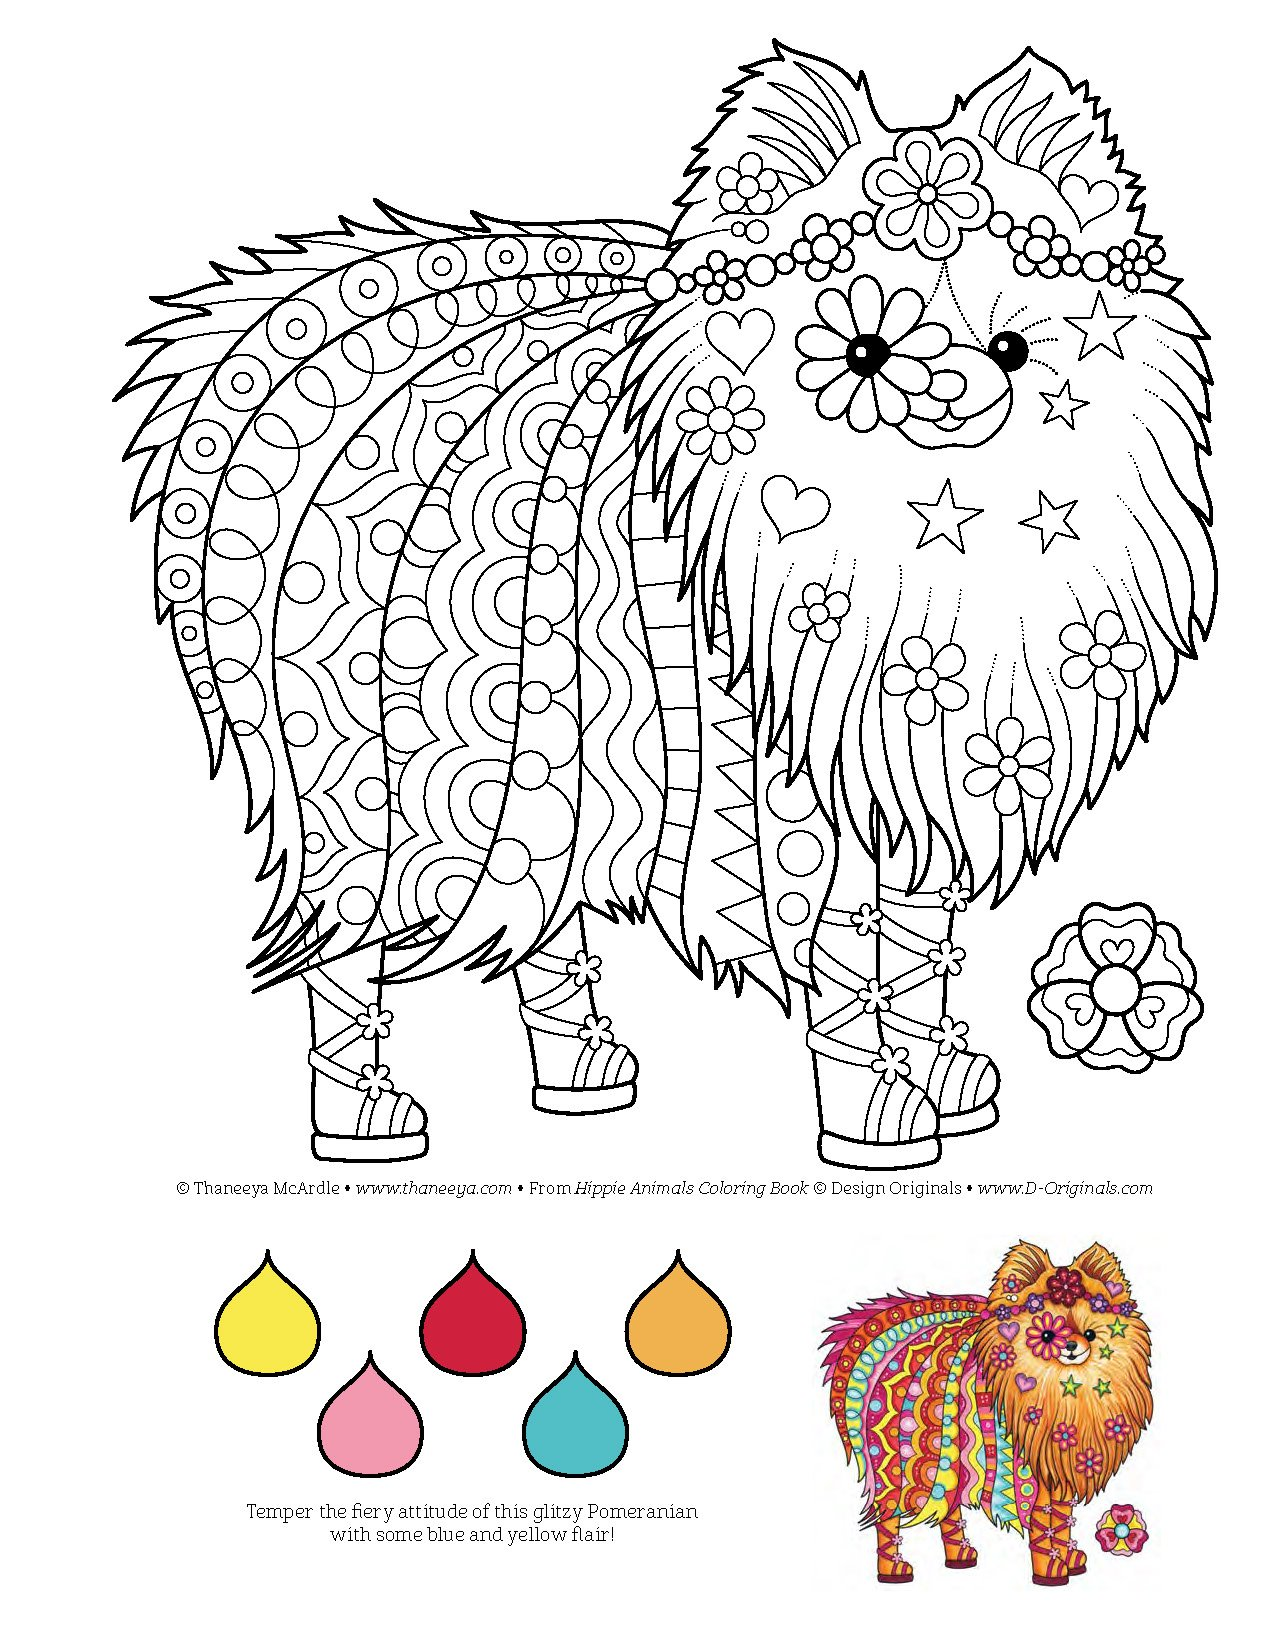 amazoncom hippie animals coloring book coloring is fun design originals 9781497202085 thaneeya mcardle books - Animals Coloring Book